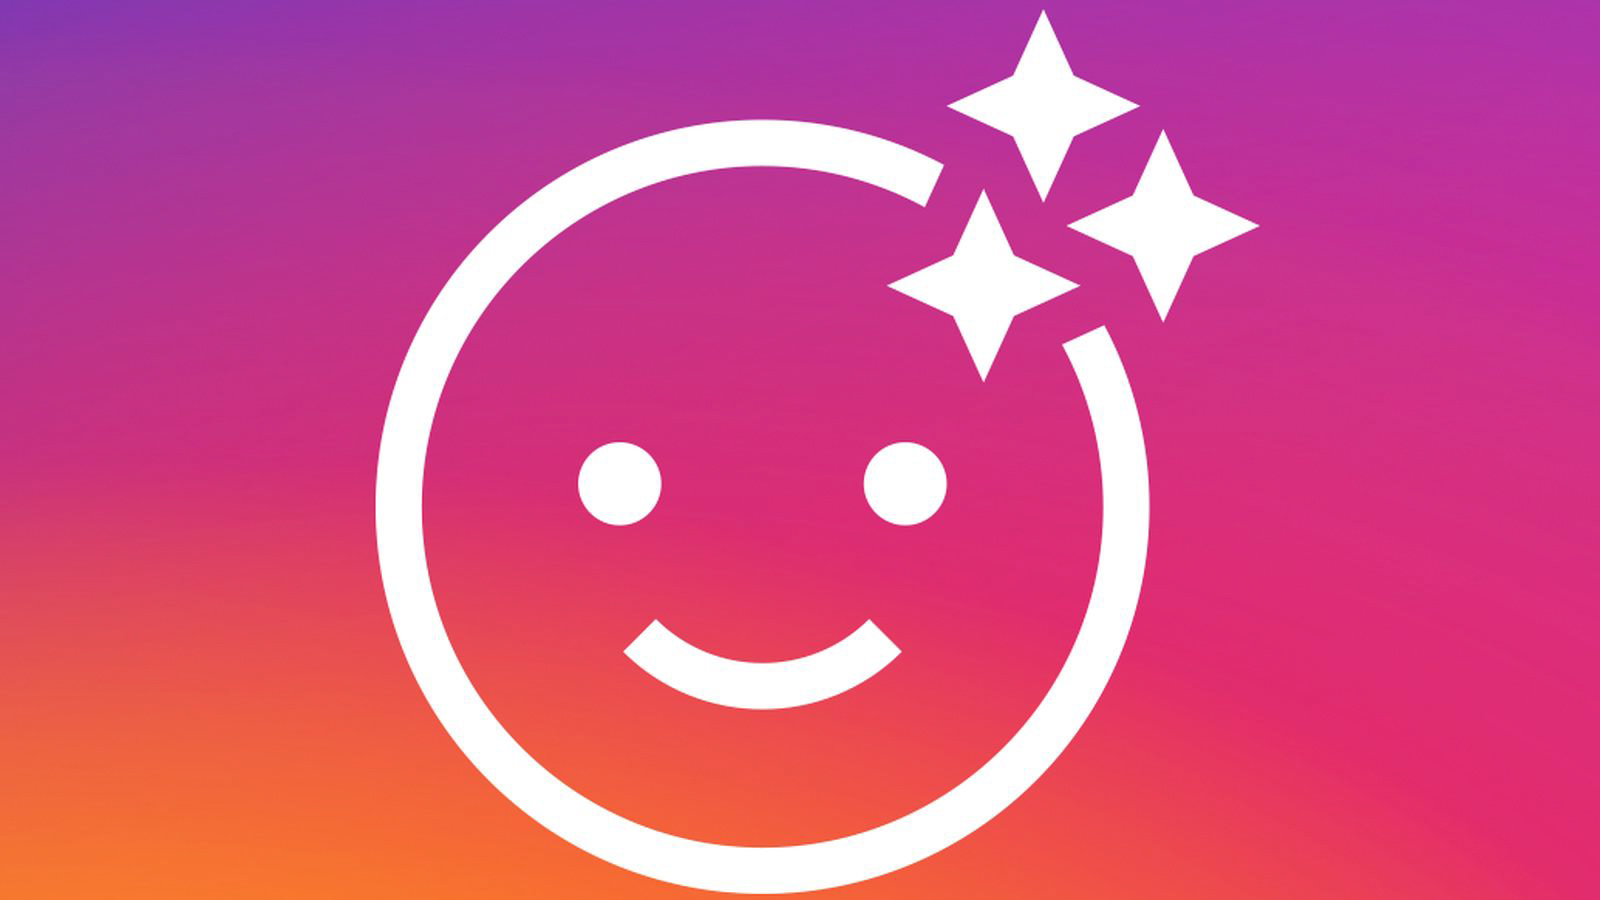 Instagram Selfie Filters & more: To Snapchat στον κόσμο του Instagram